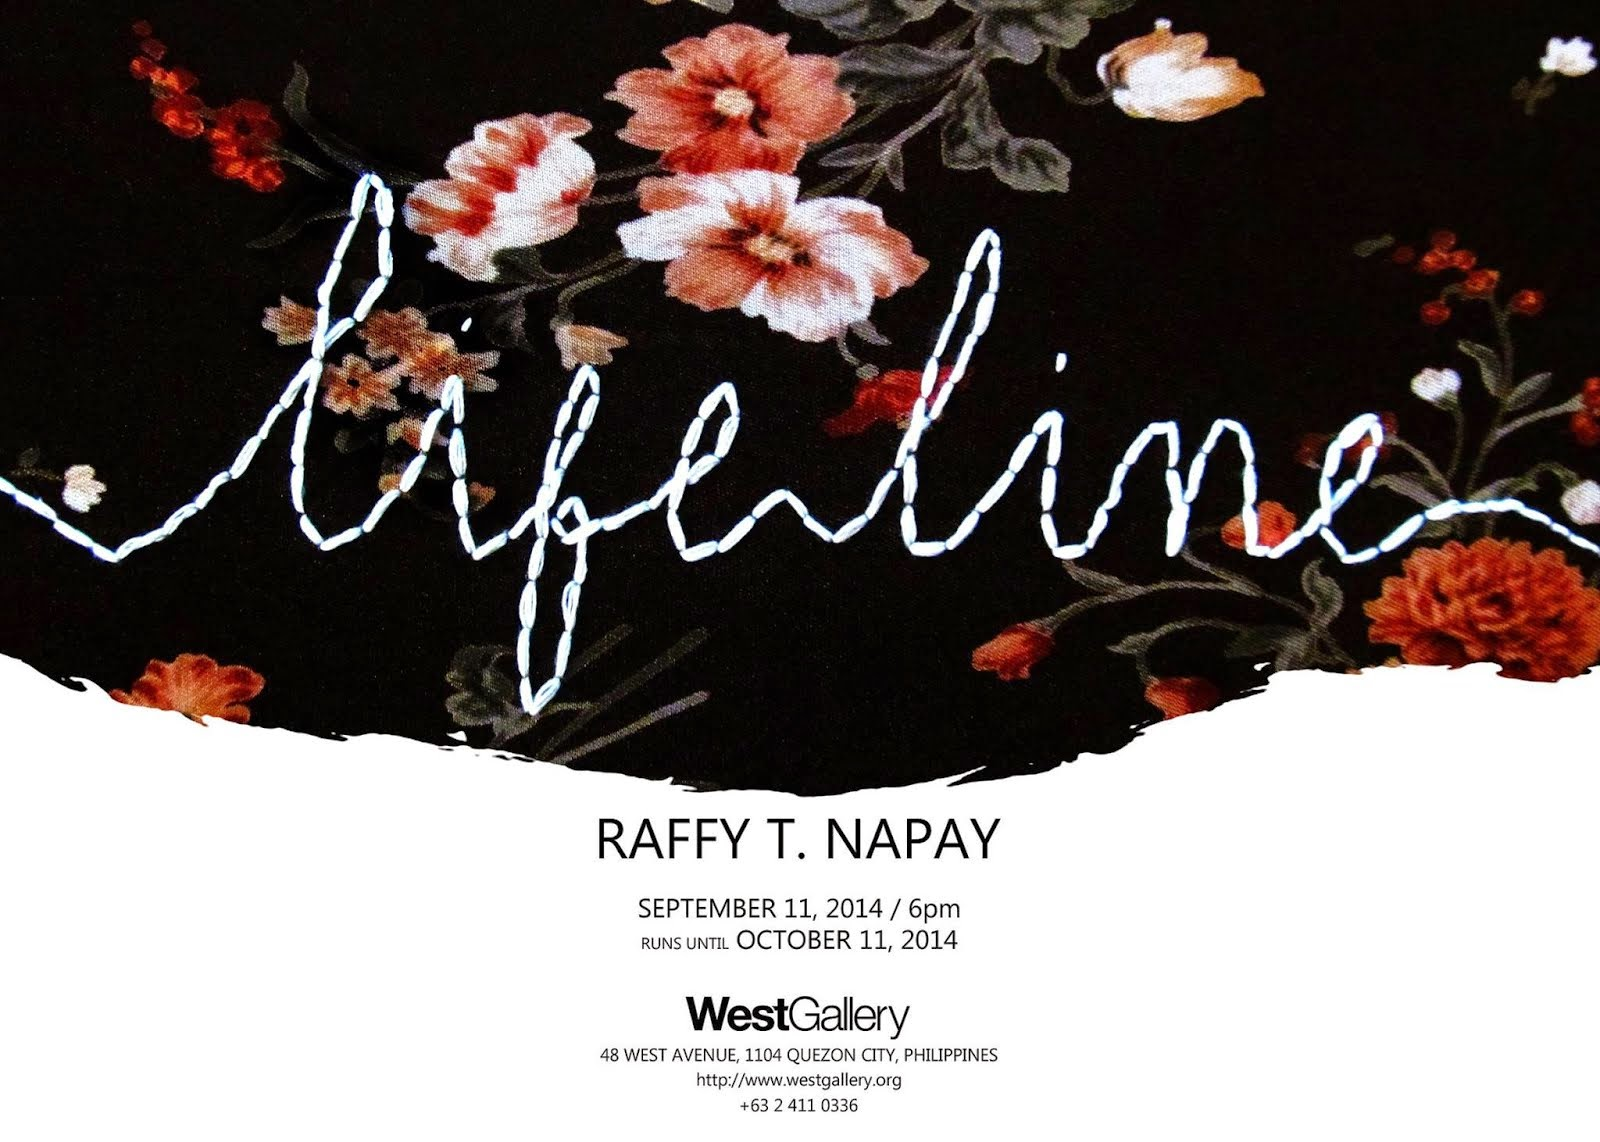 Lifeline: Solo Exhibition by Raffy T. Napay